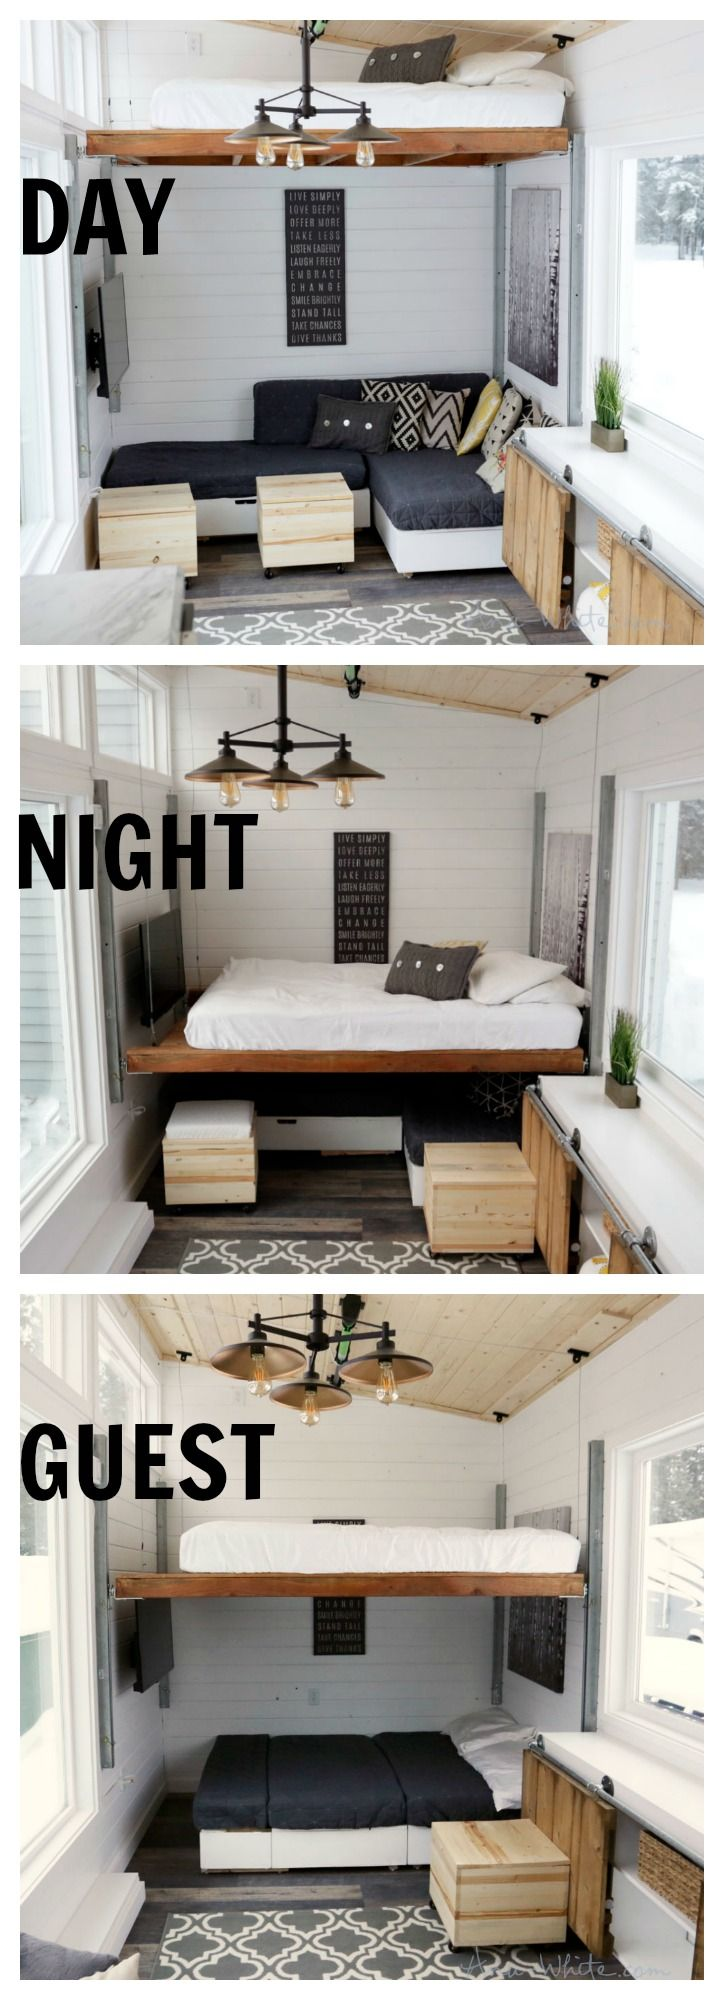 133 best Teeny Tiny images on Pinterest Tiny living Tiny homes